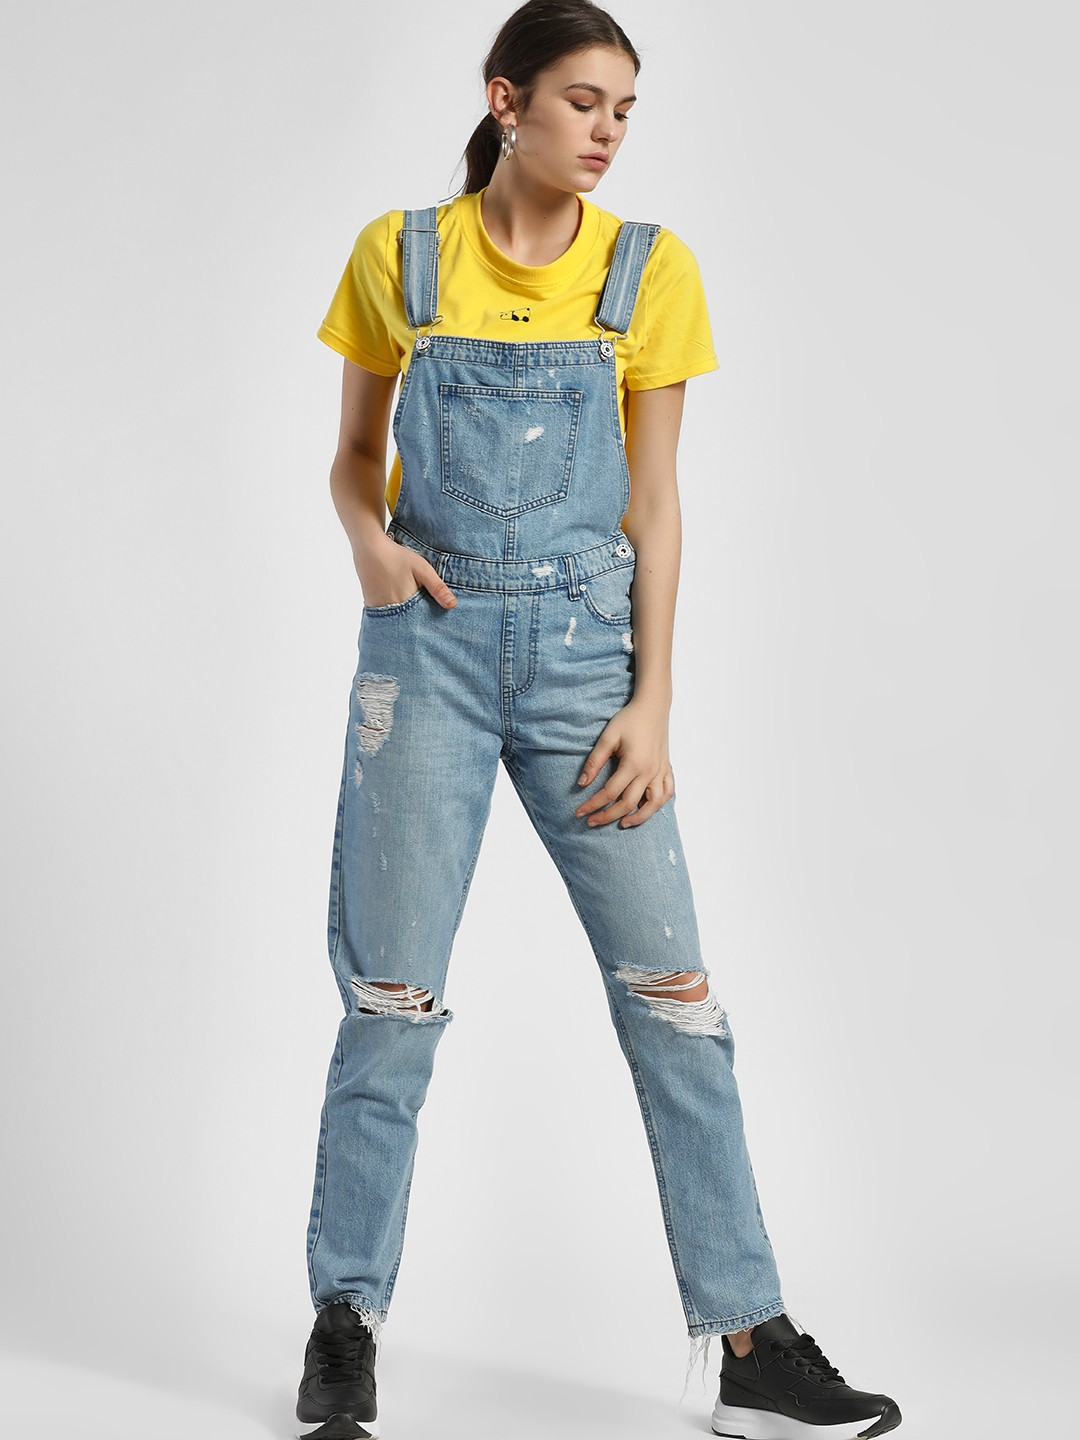 LOVEGEN Blue Ripped Light Wash Denim Dungaree 1